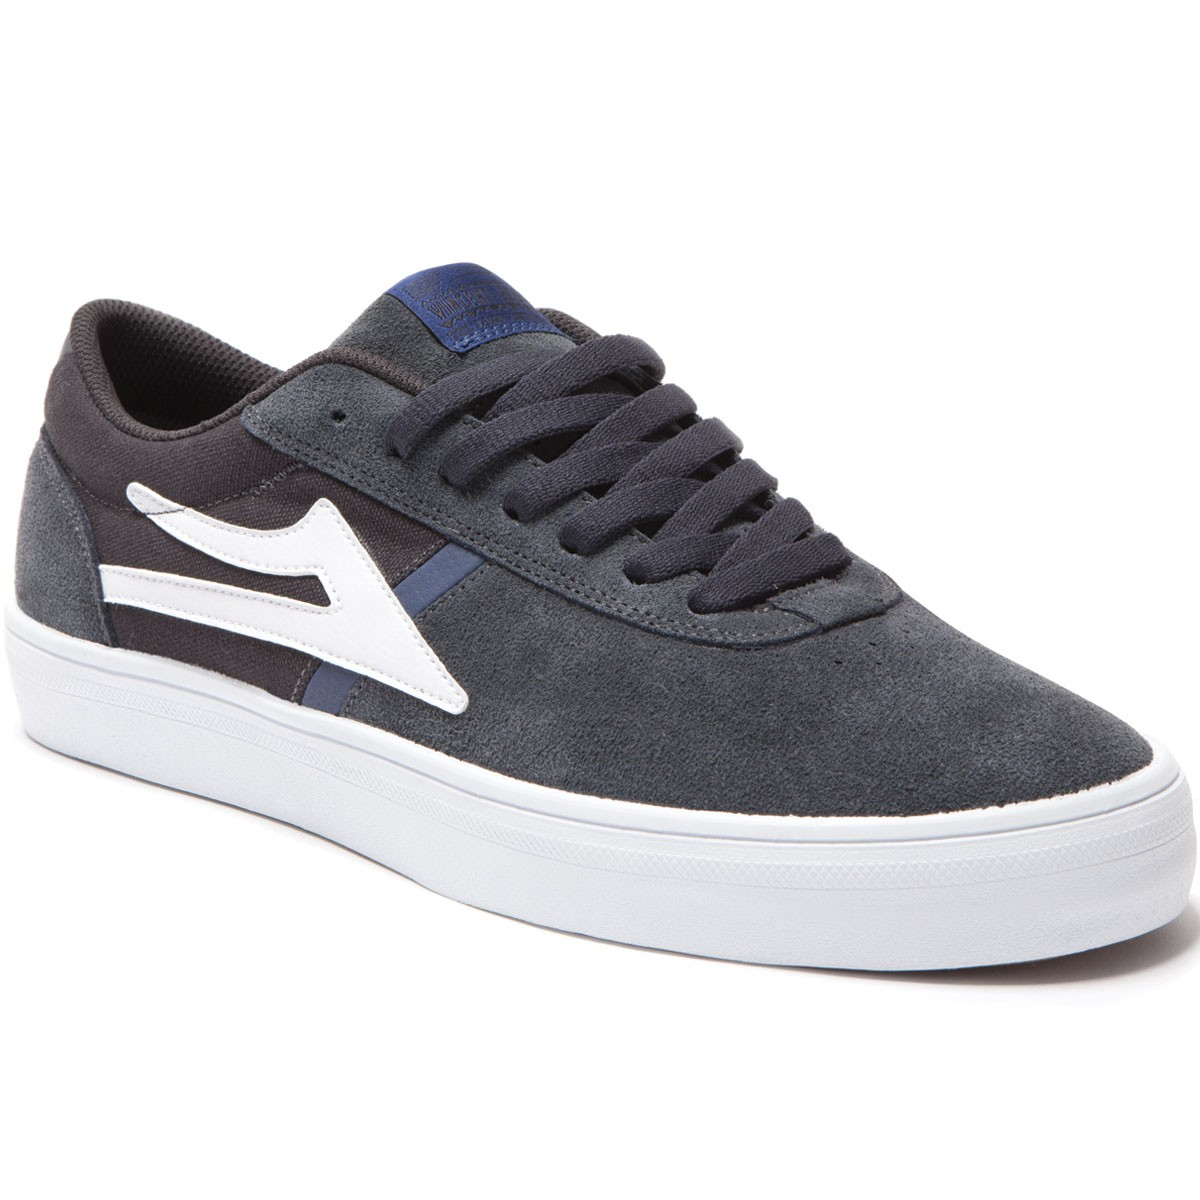 Lakai Vincent 2 Shoes - Phantom Suede - 10.0